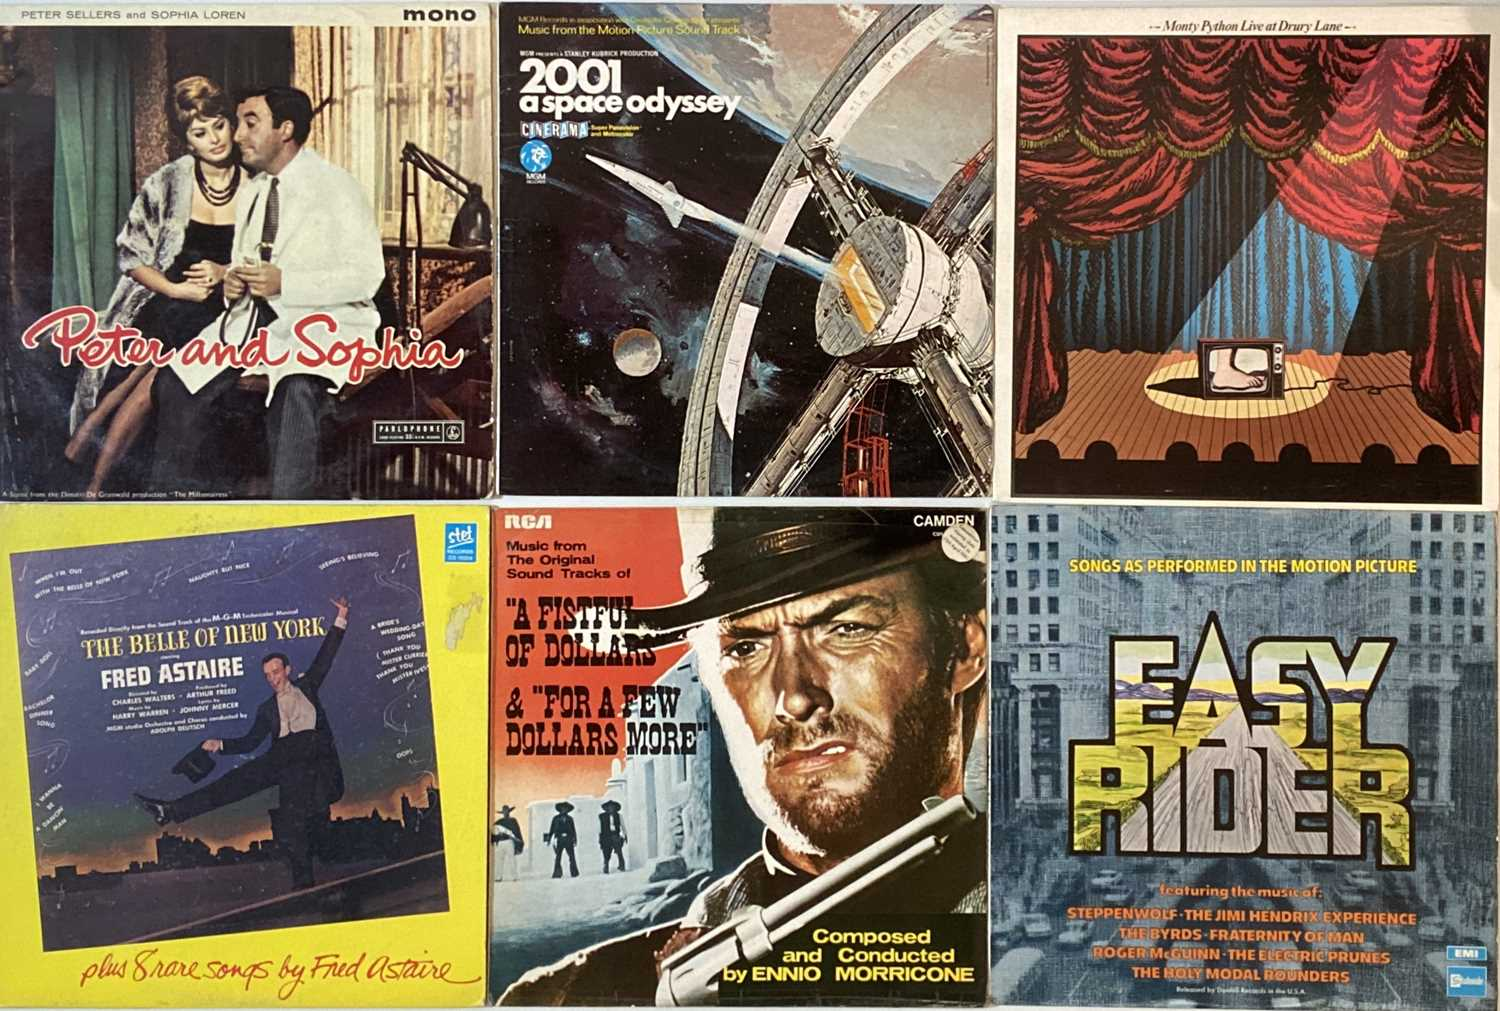 SOUNDTRACKS/ STAGE & SCREEN/ COMEDY/ SPOKEN WORD - LPs - Image 4 of 5